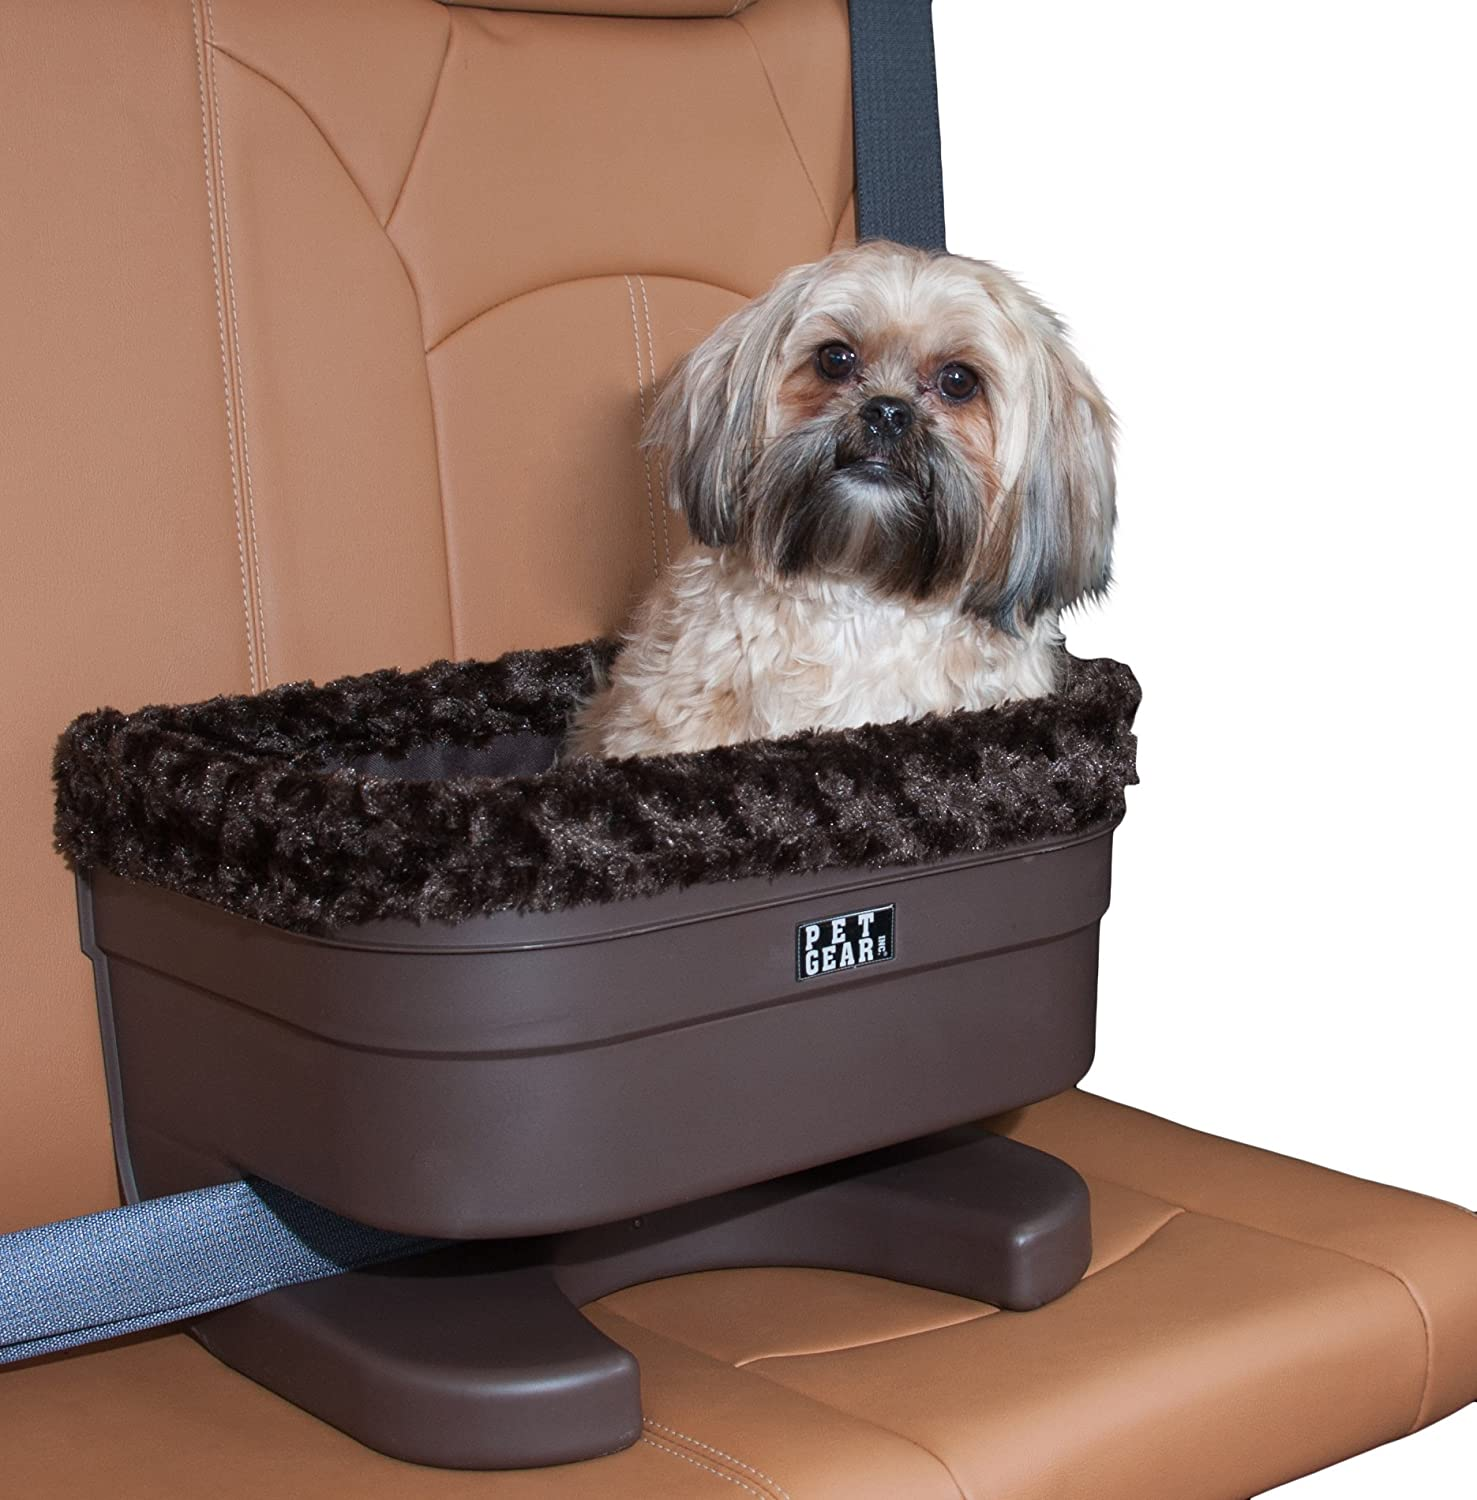 Amazon Pet Gear Bucket Booster Car Seat For Dogs Cats Removable Washable Comfort Pillow Liner Safety Tethers Included Installs In Seconds